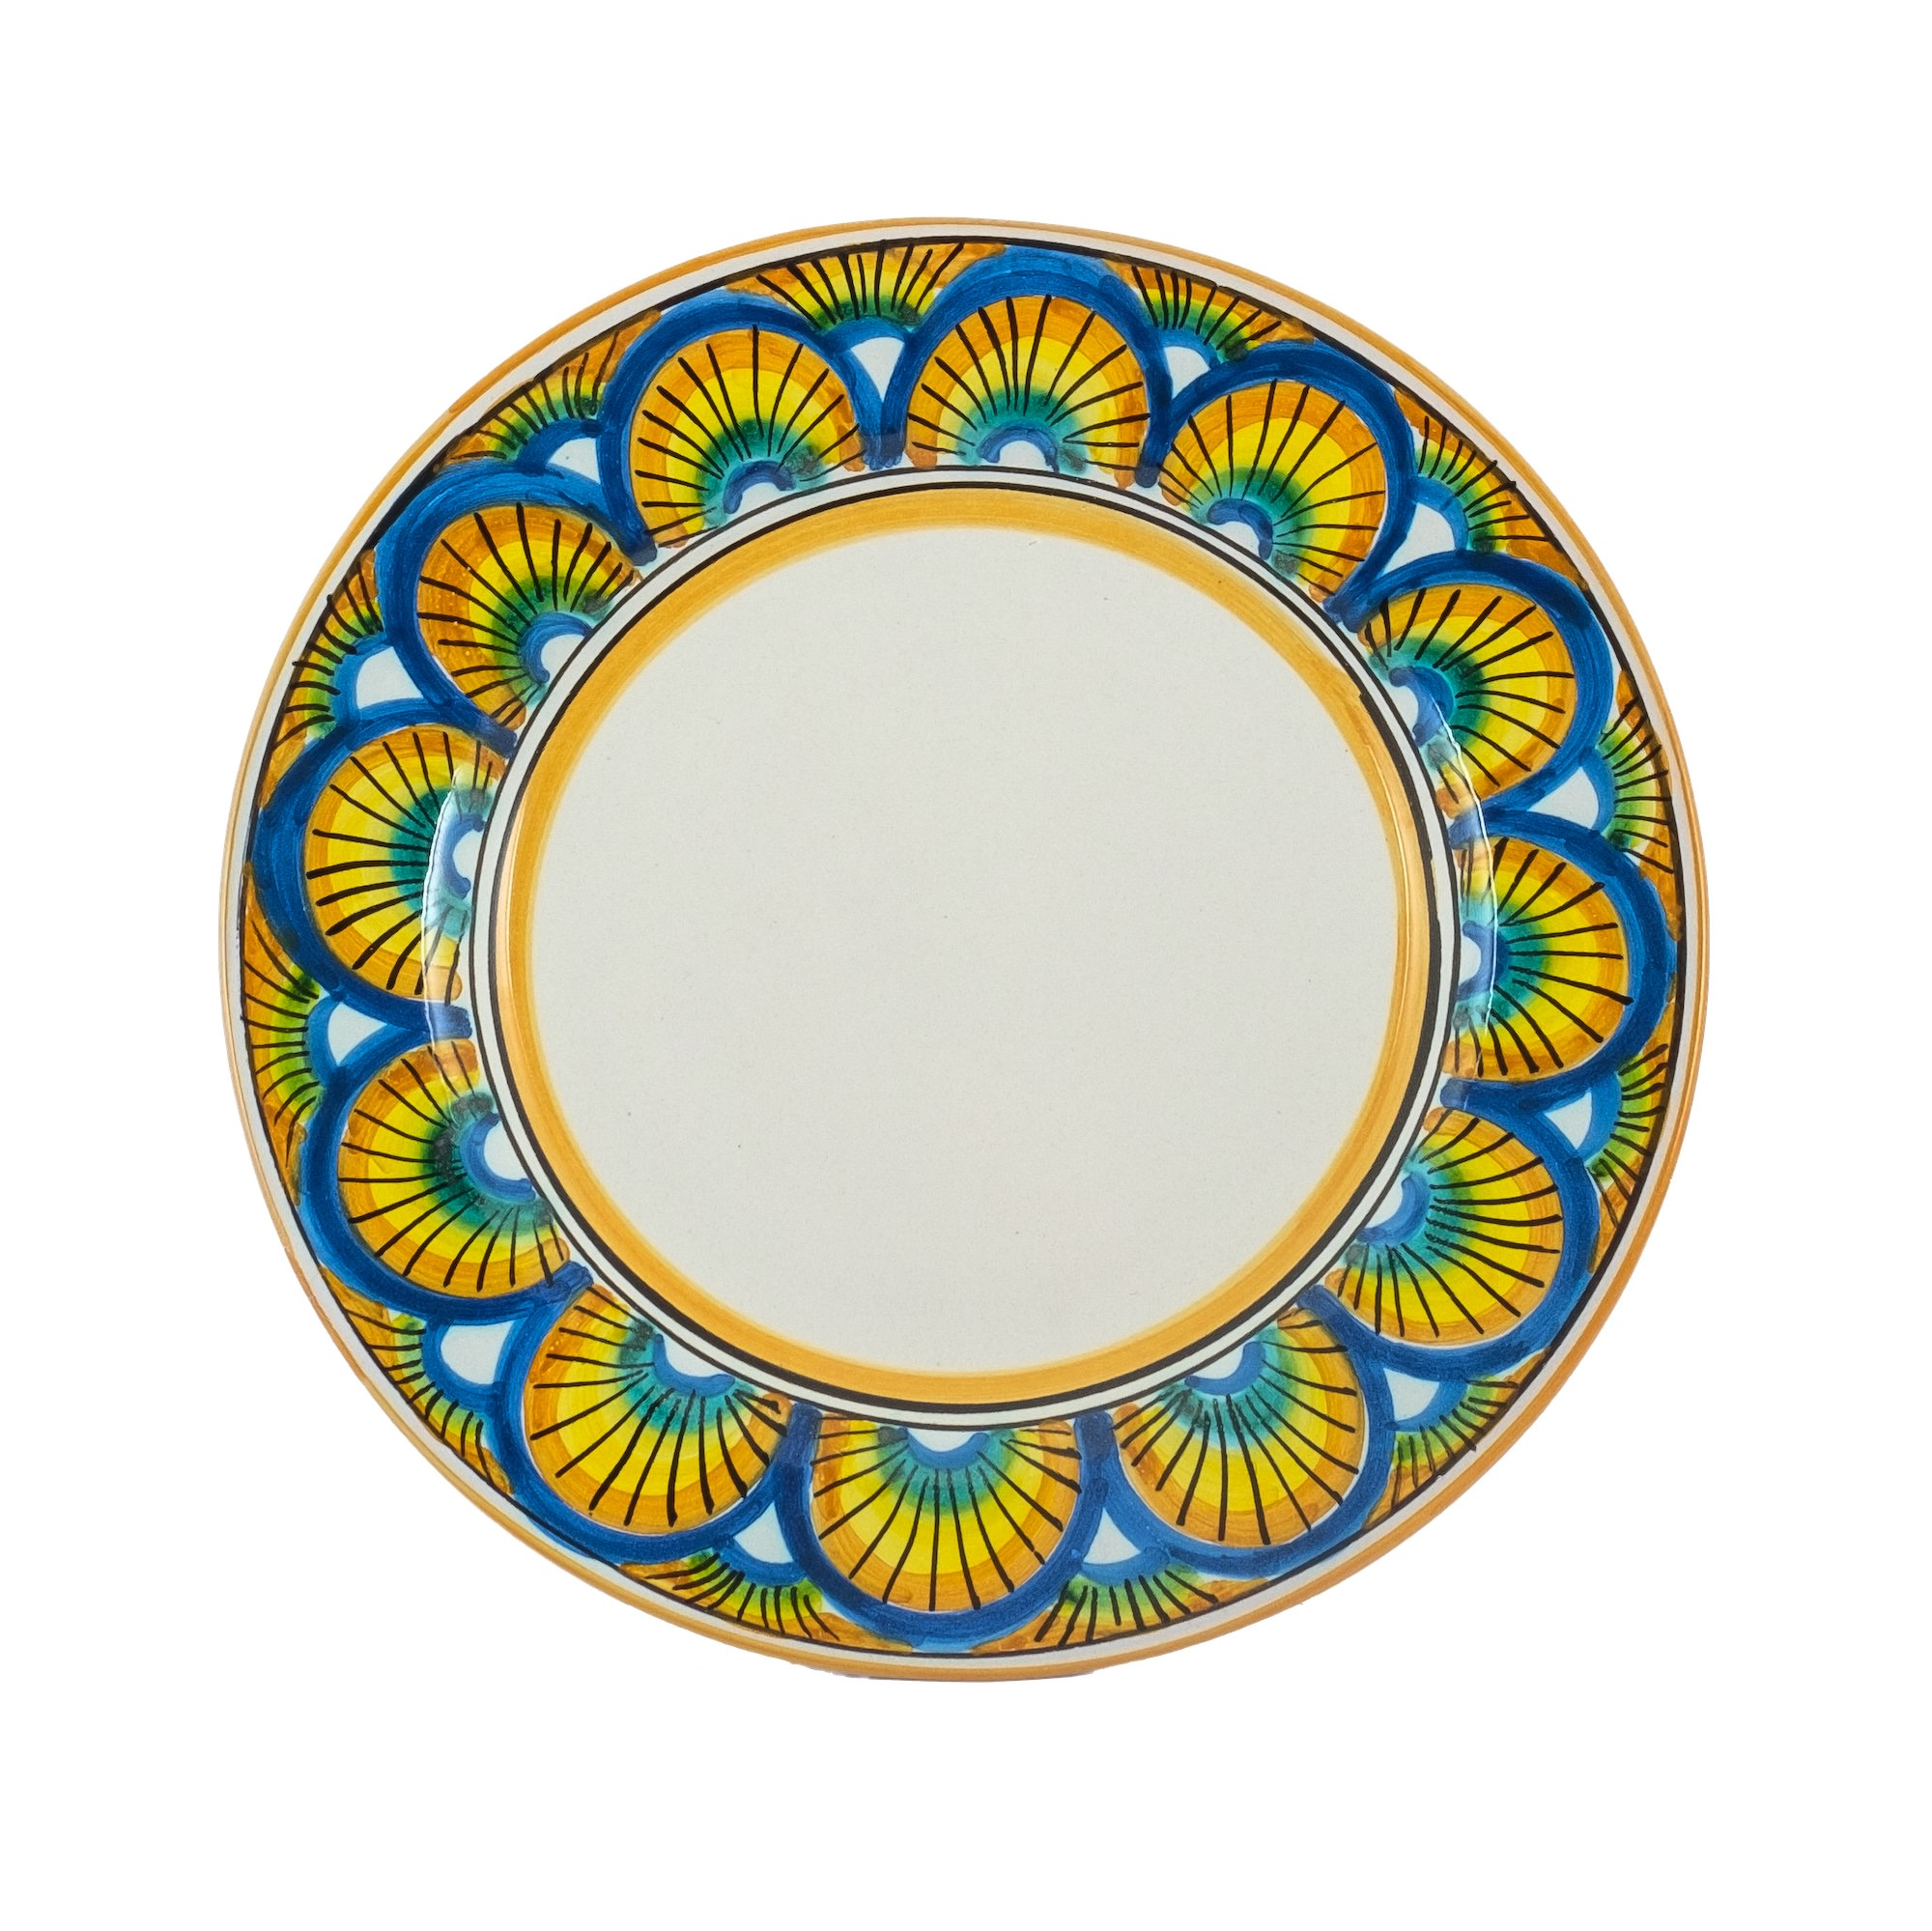 Collections dishes Ego the yellow Montedoro. Caltagirone - Sicilia